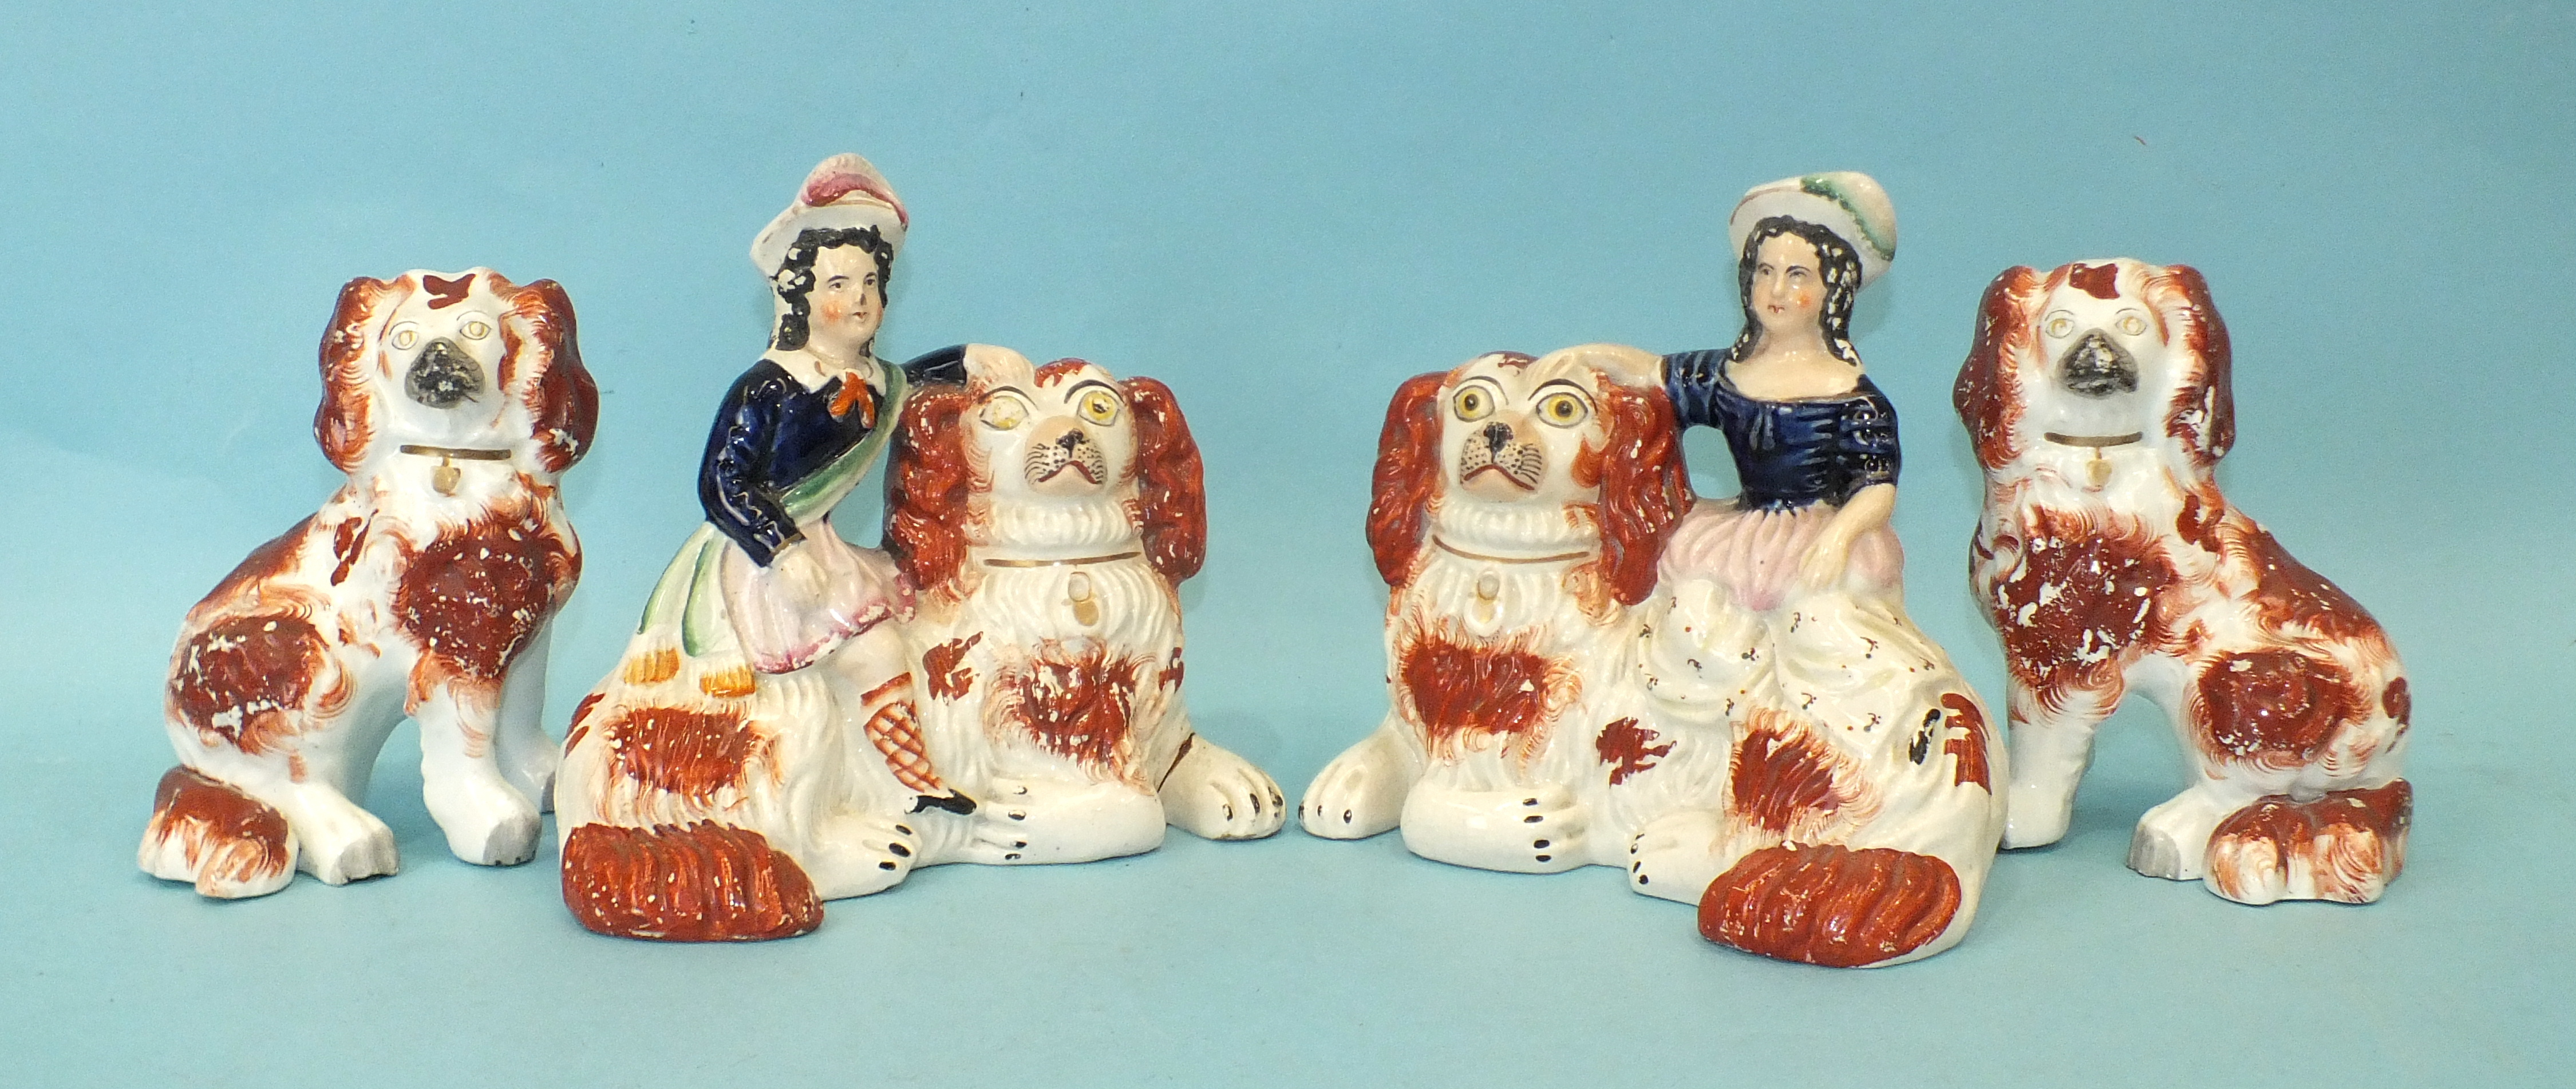 A pair of 19th century Staffordshire recumbent liver and white spaniels, with a figure of a young